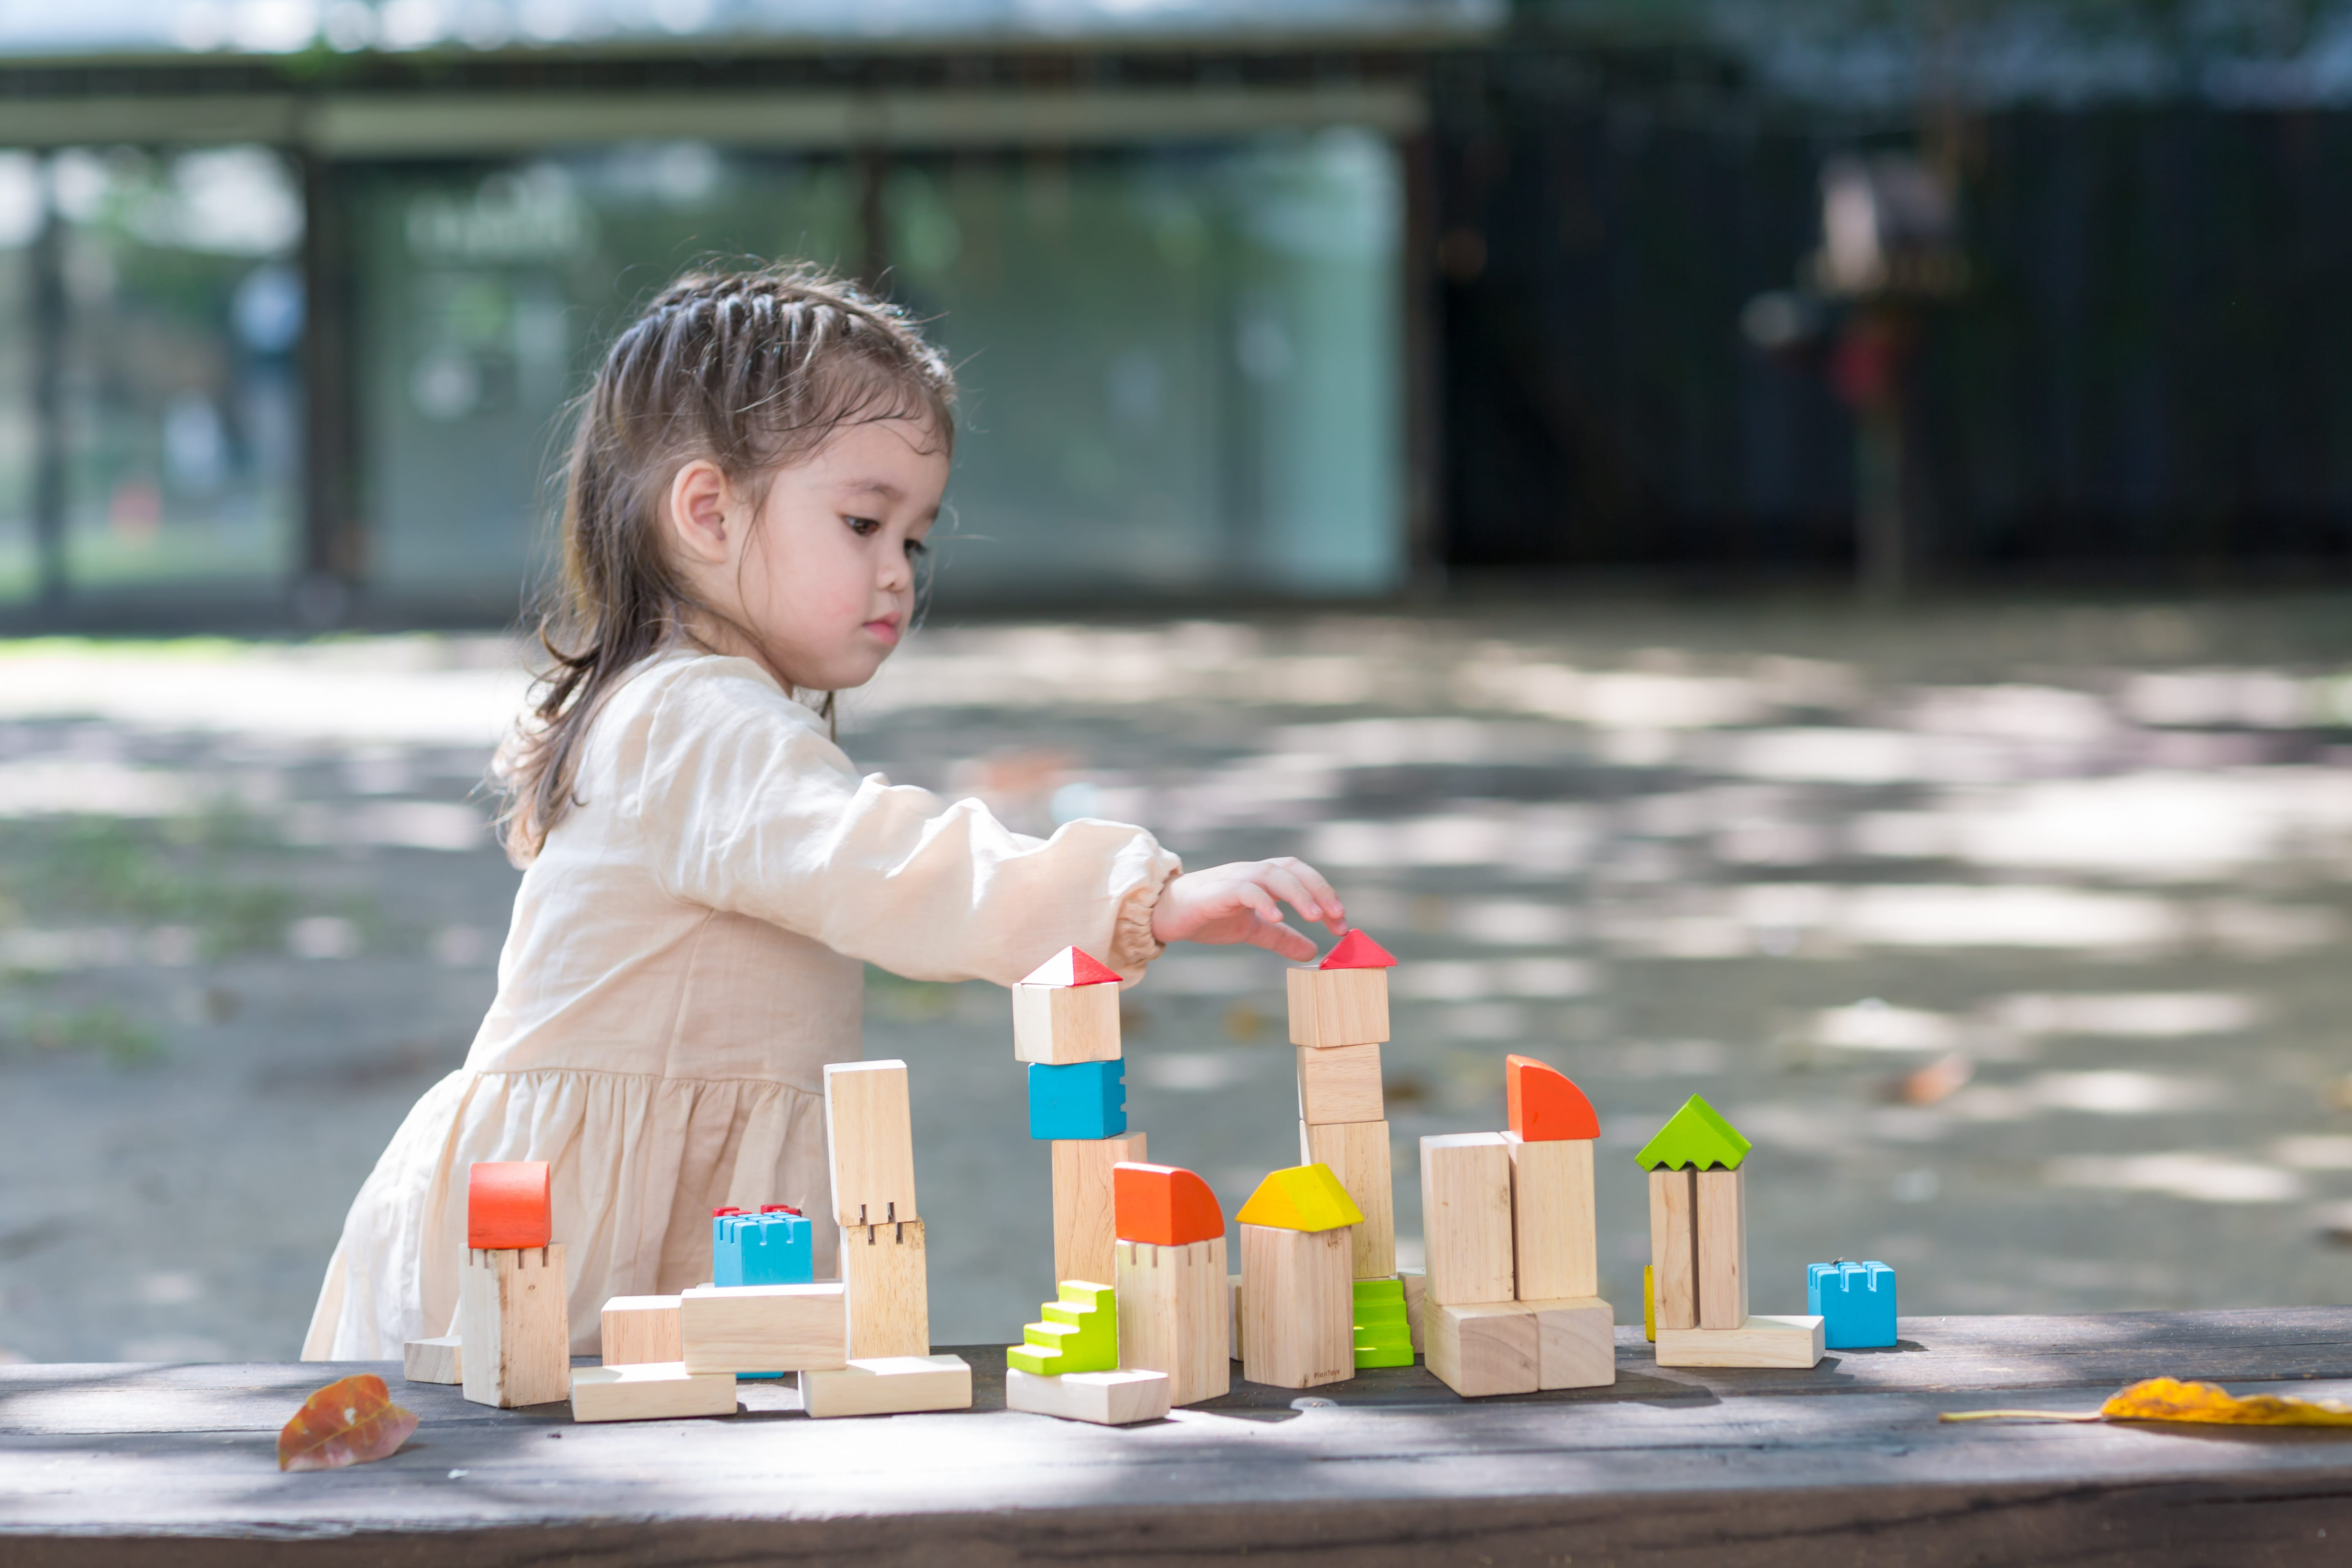 5527_PlanToys_CREATIVE_BLOCKS_Blocks_and_Construction_Mathematical_Creative_Fine_Motor_Language_and_Communications_18m_Wooden_toys_Education_toys_Safety_Toys_Non-toxic_1.jpg